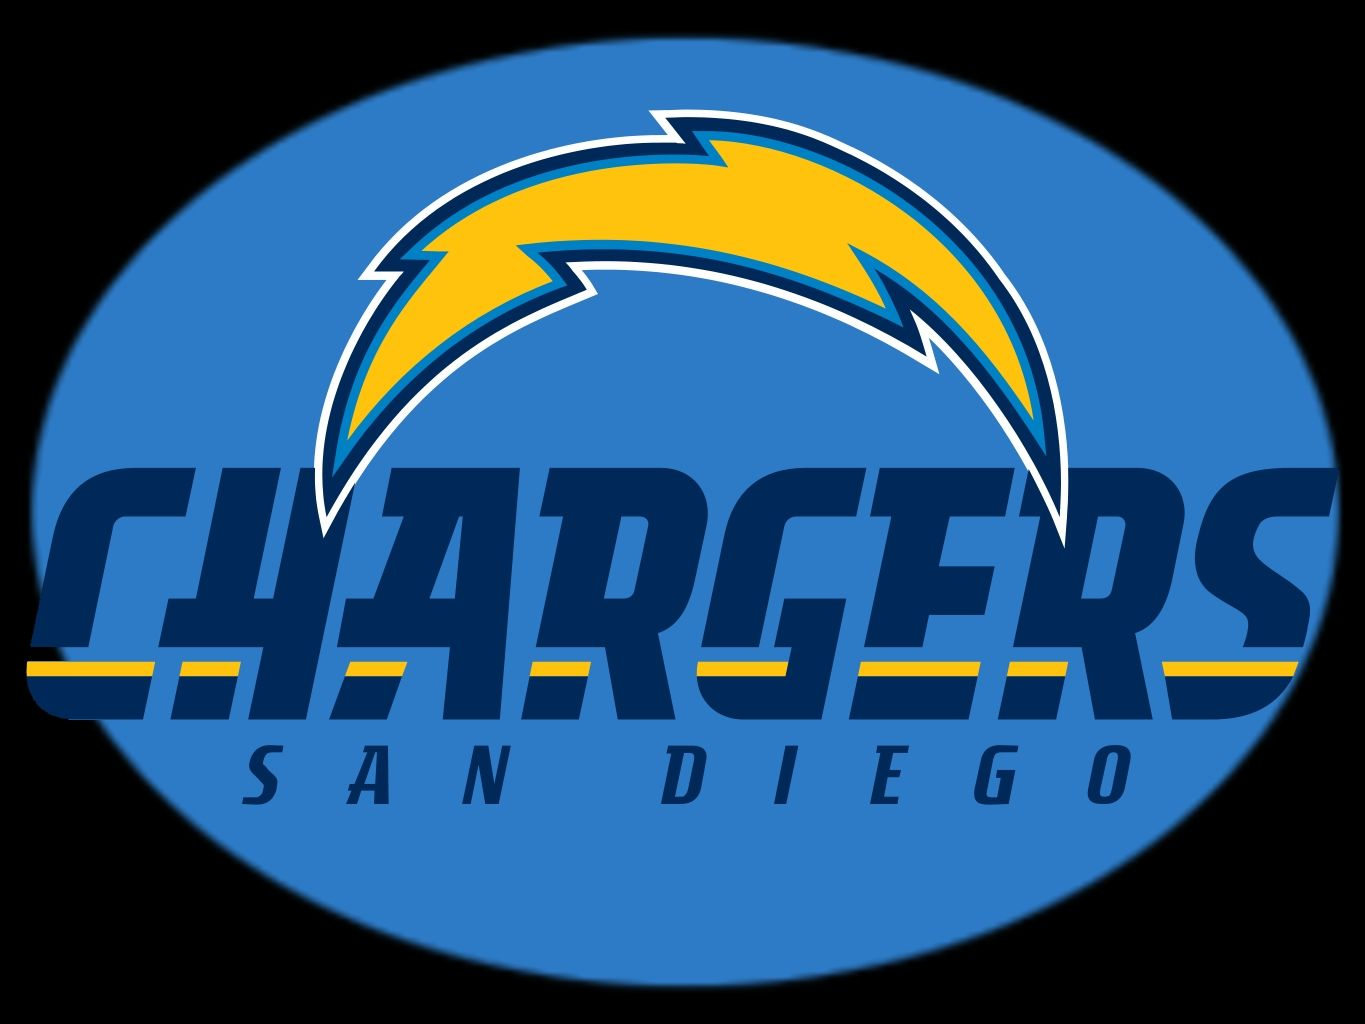 San Diego Chargers Tickets San Diego Chargers San Diego Chargers Logo San Diego Chargers Wallpaper